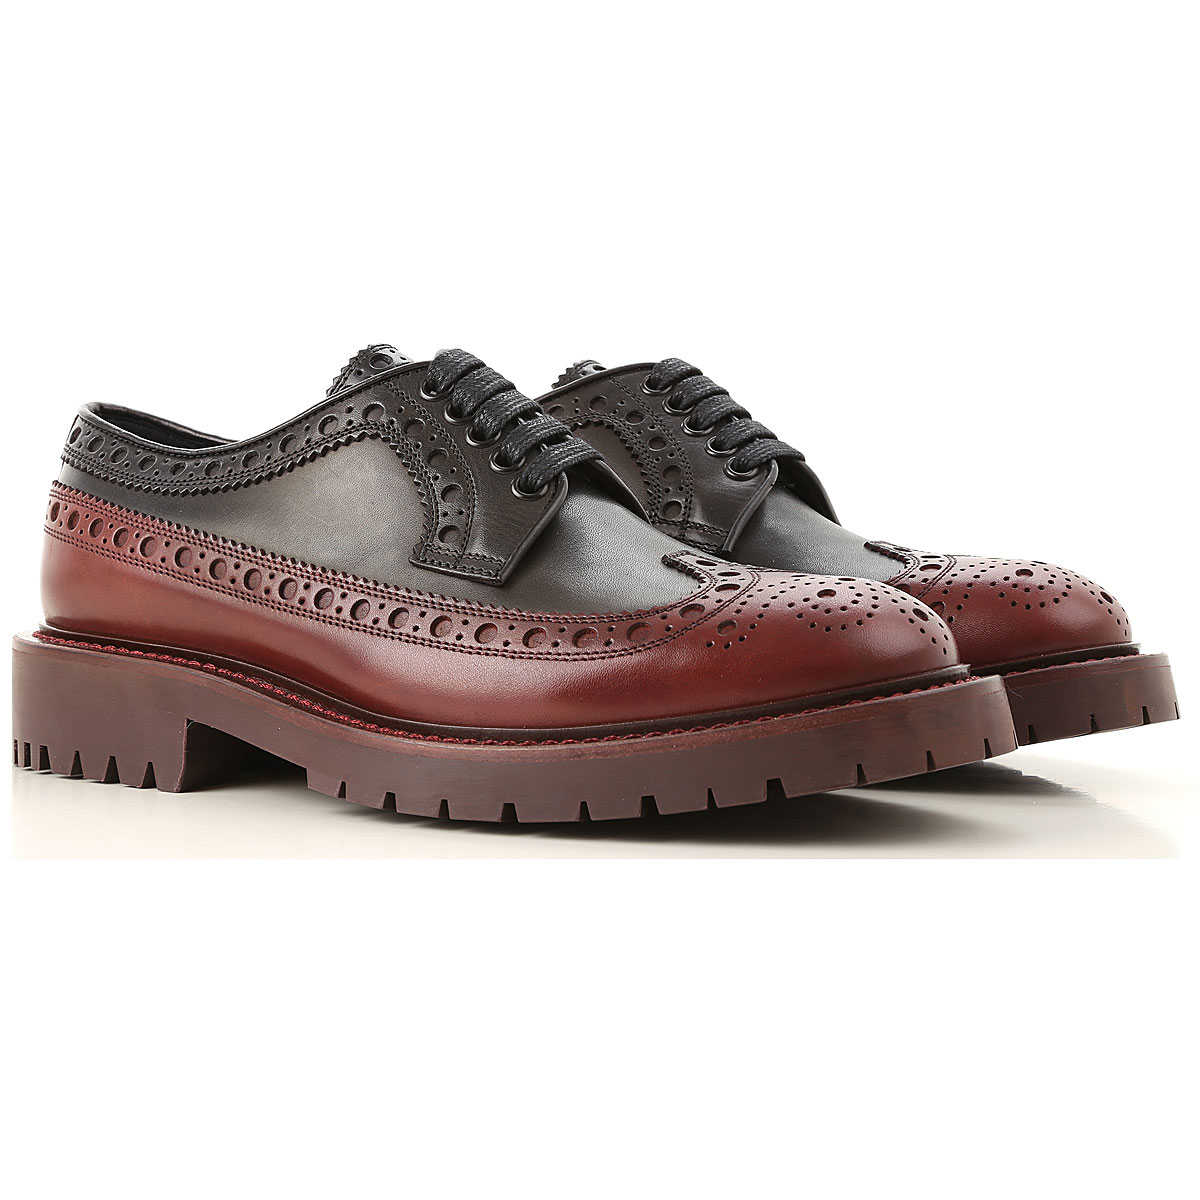 Burberry Lace Up Shoes for Men Oxfords Derbies and Brogues On Sale SE - GOOFASH